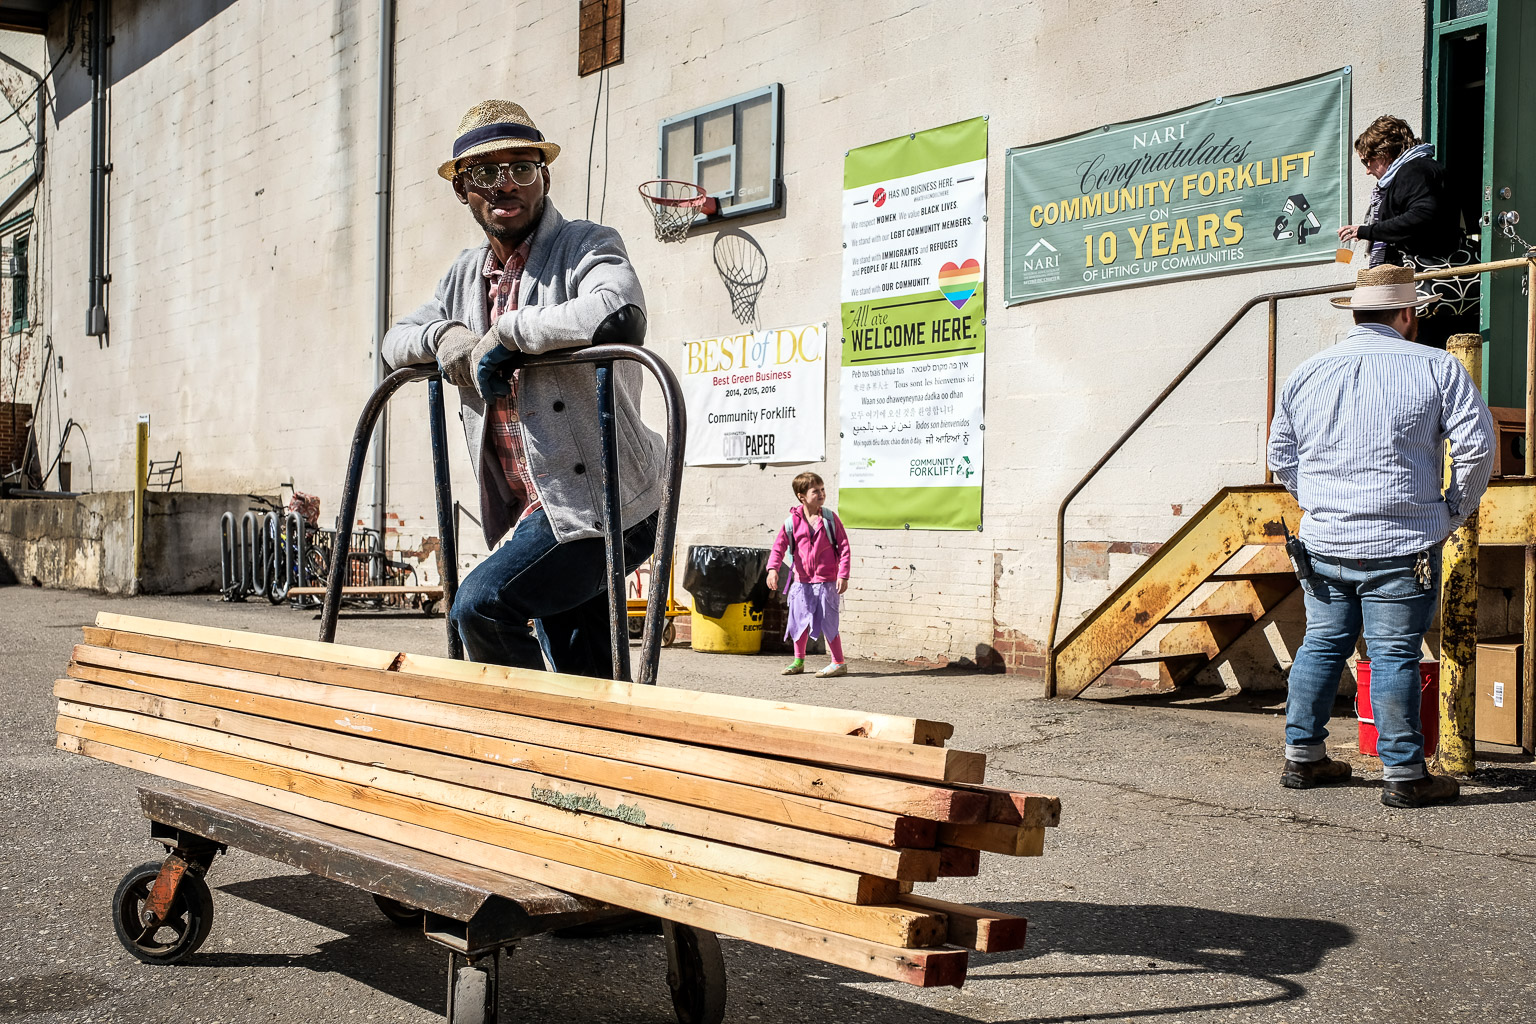 The cart is just a prop. This guy did nothing all day but strike GQ poses using whatever was available. Just kidding! I do love this shot, though. There are so many elements in this frame that make it a perfect storytelling image for the events of the day, as well as for what goes on at Community Forklift on a daily basis. I couldn't stage a scene like this to save my life, but I can definitely see it and shoot it.